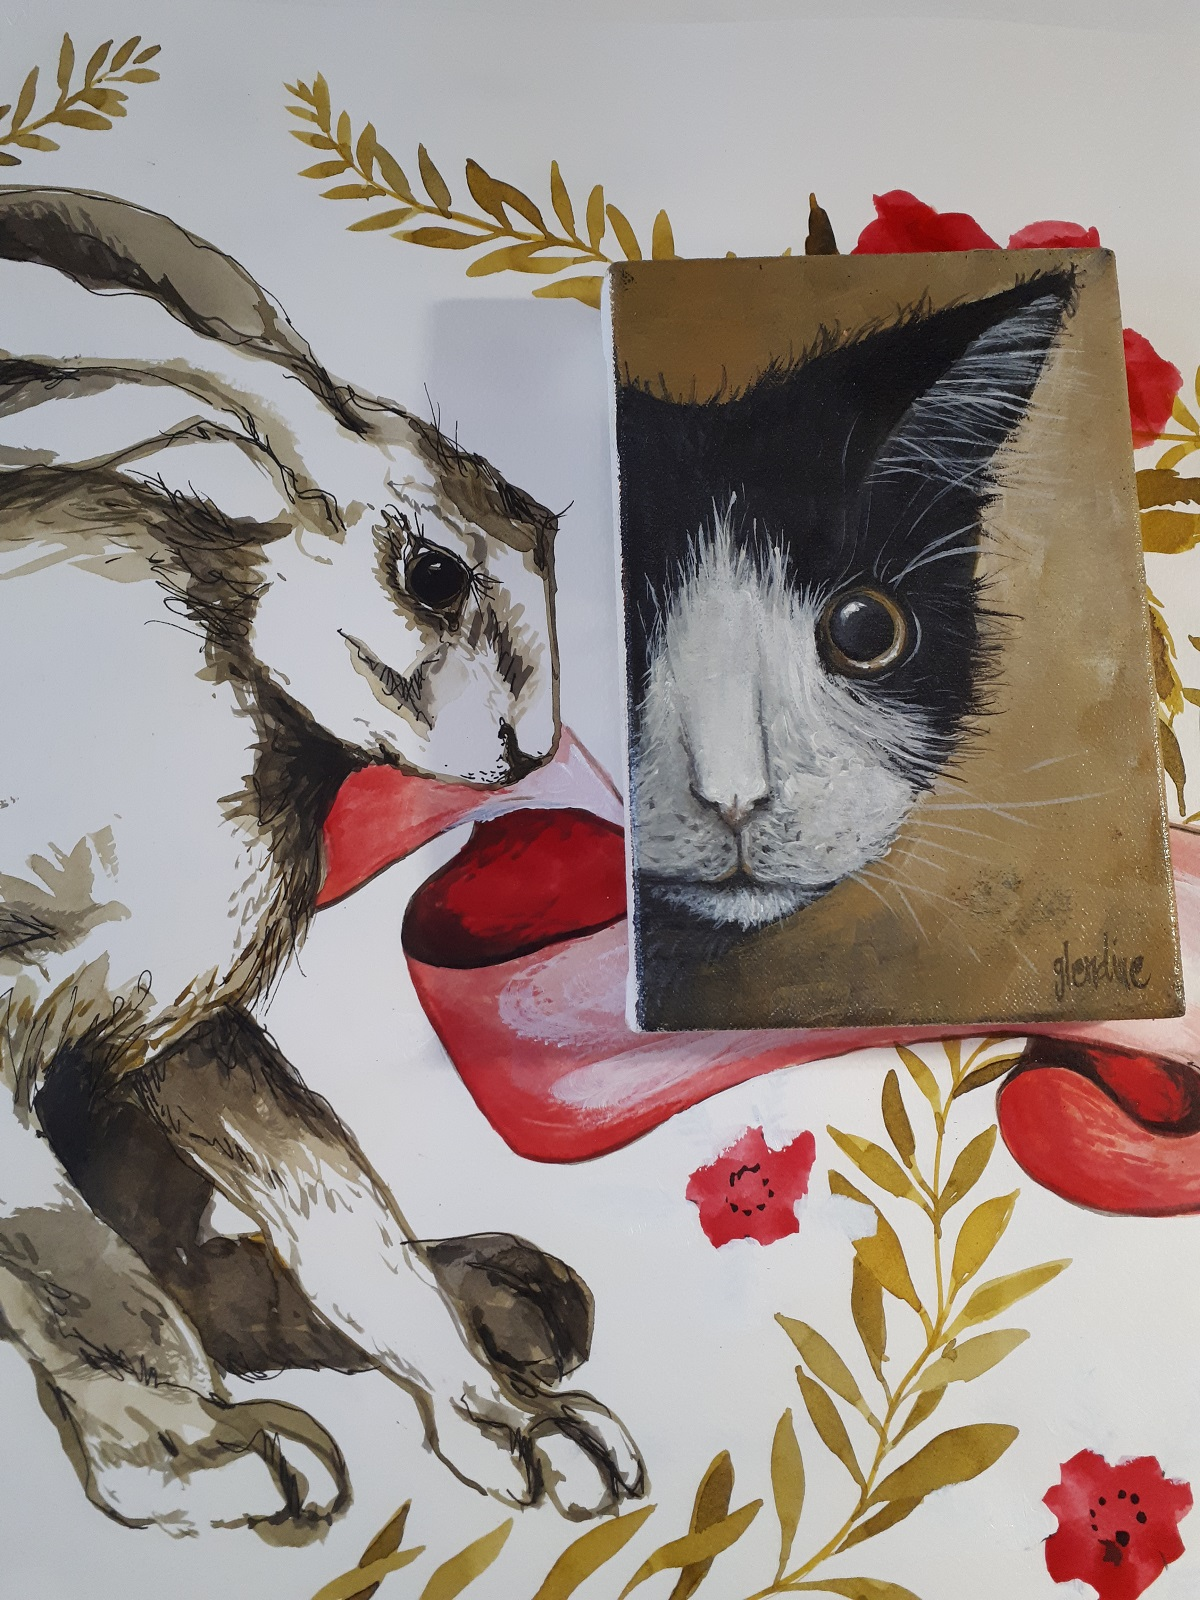 Rabbit and cat paintings by Glendine